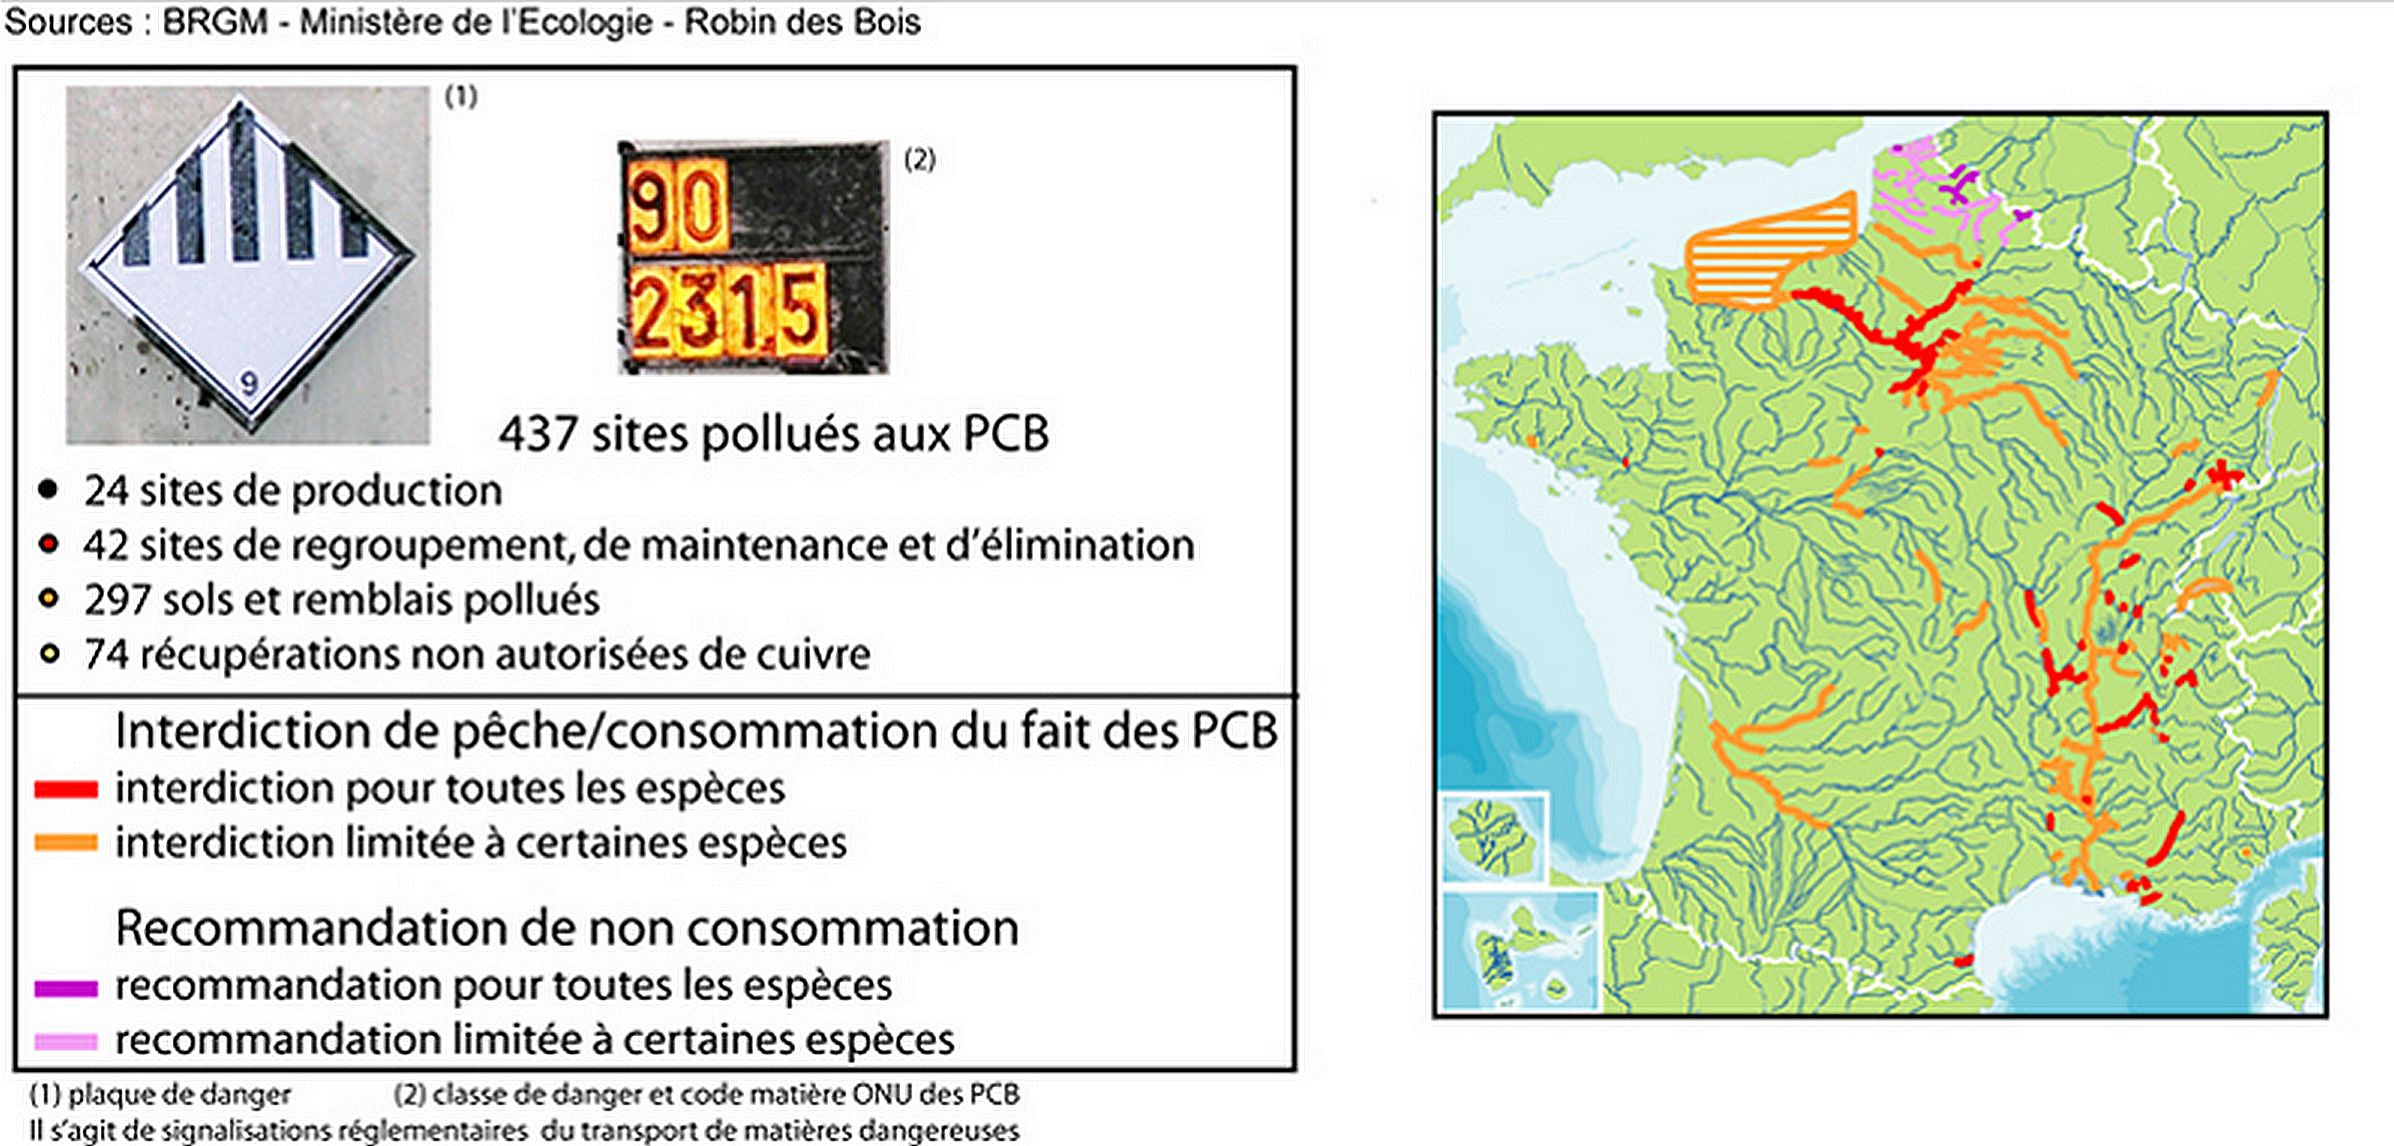 Map of fishing areas polluted by PCB in France.